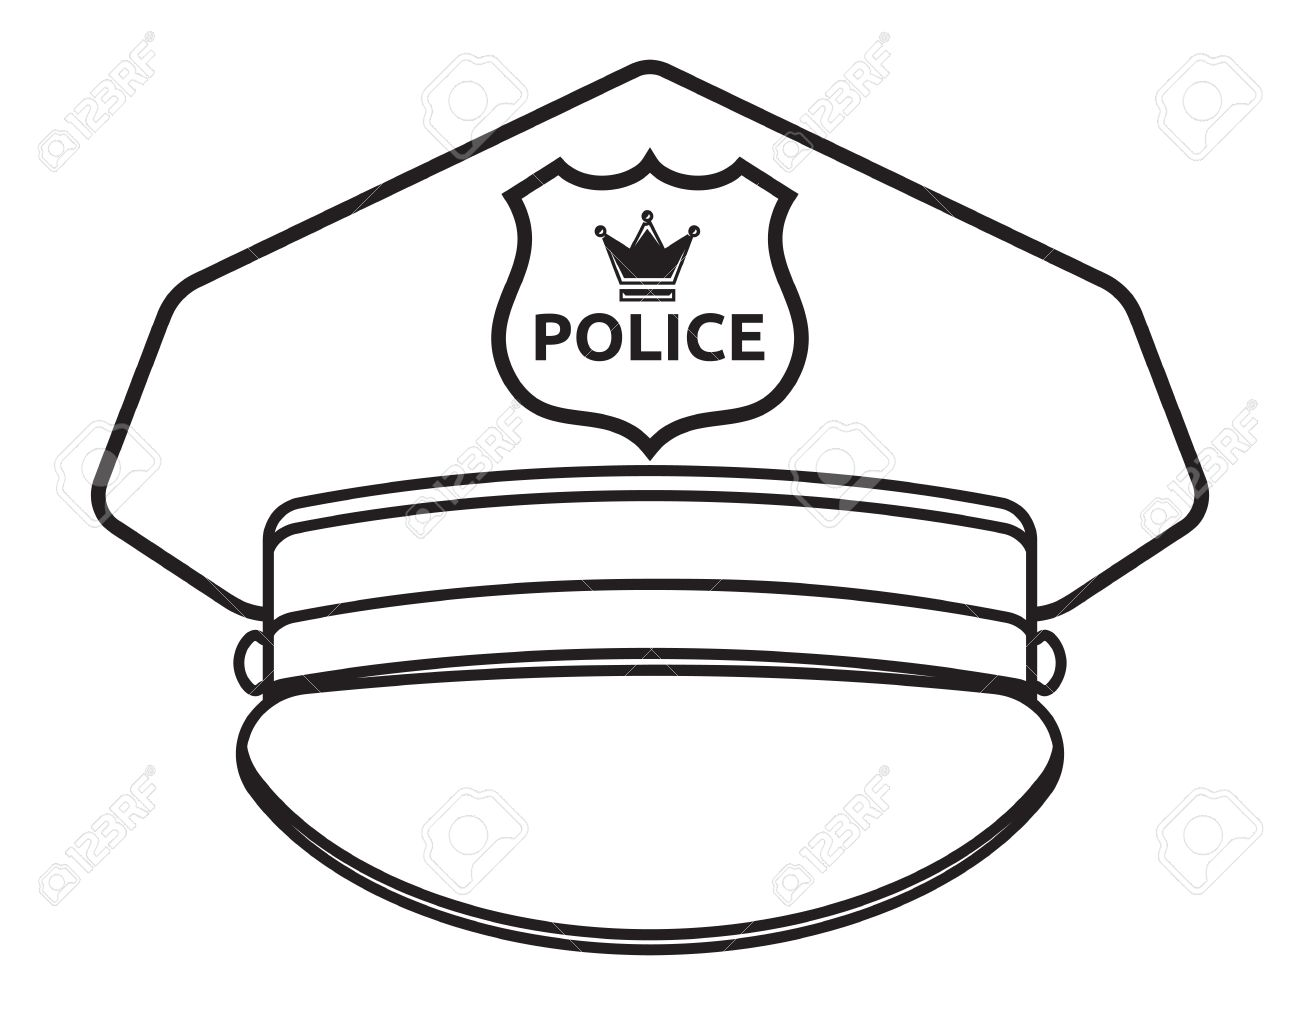 police hat drawing at getdrawings com free for personal Dr. Seuss Hat Silhouette Clip Art Tie Clip Art Dr. Seuss Hat